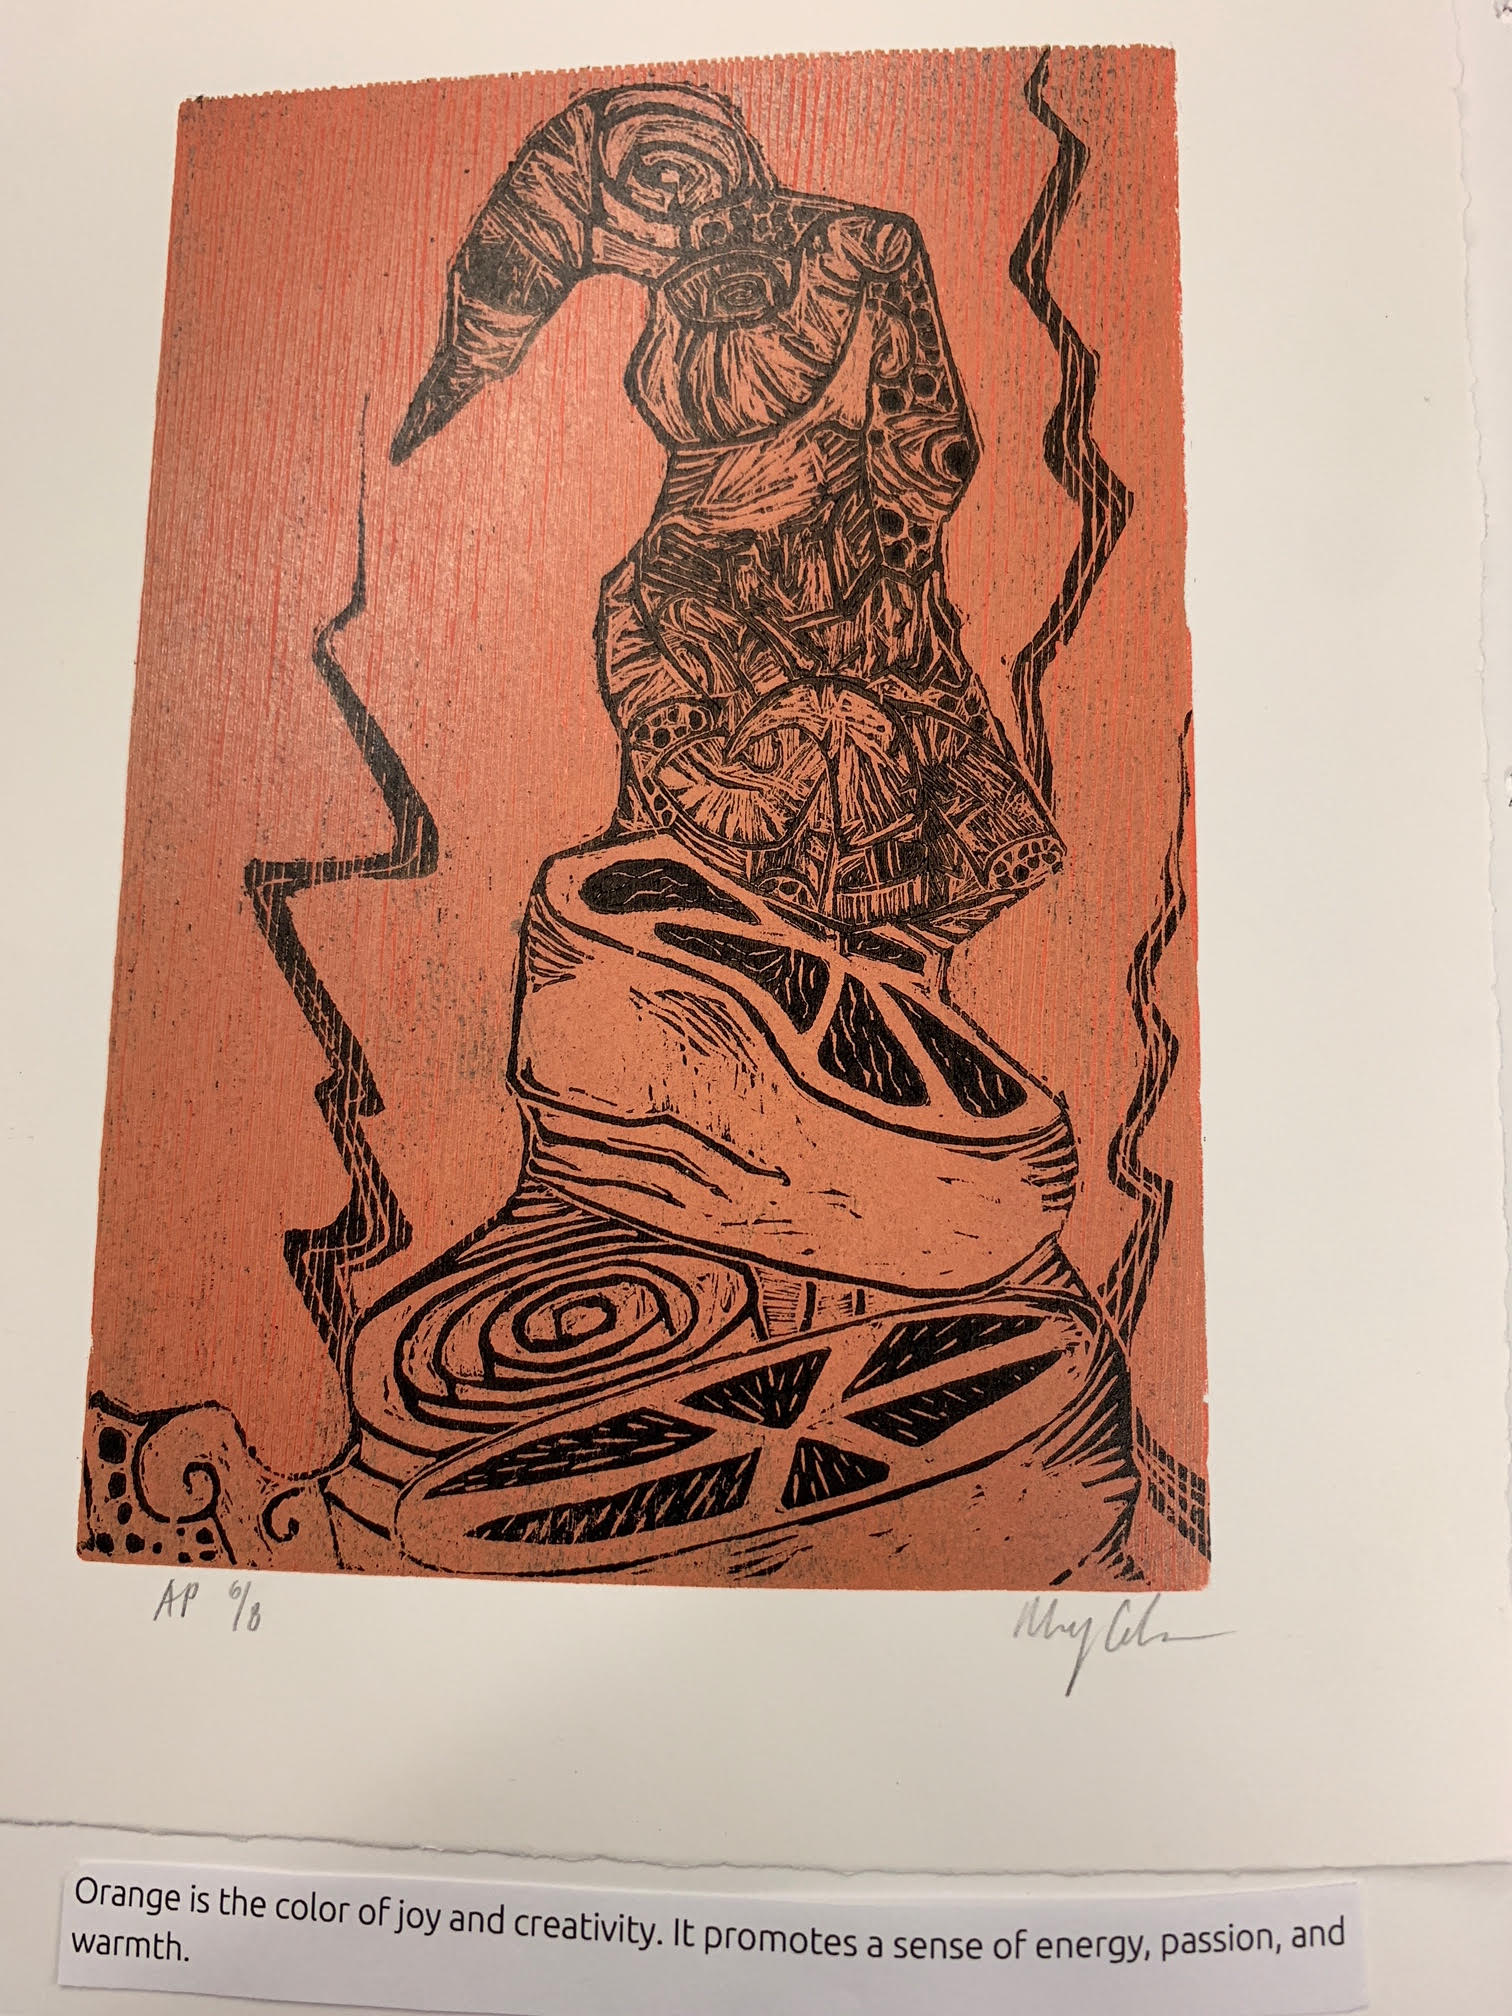 Page 10. Caption: Center of the page is an abstract print that is orange with a red background. Orange is the color of joy and creativity; it promotes a sense of energy, passion, and warmth.